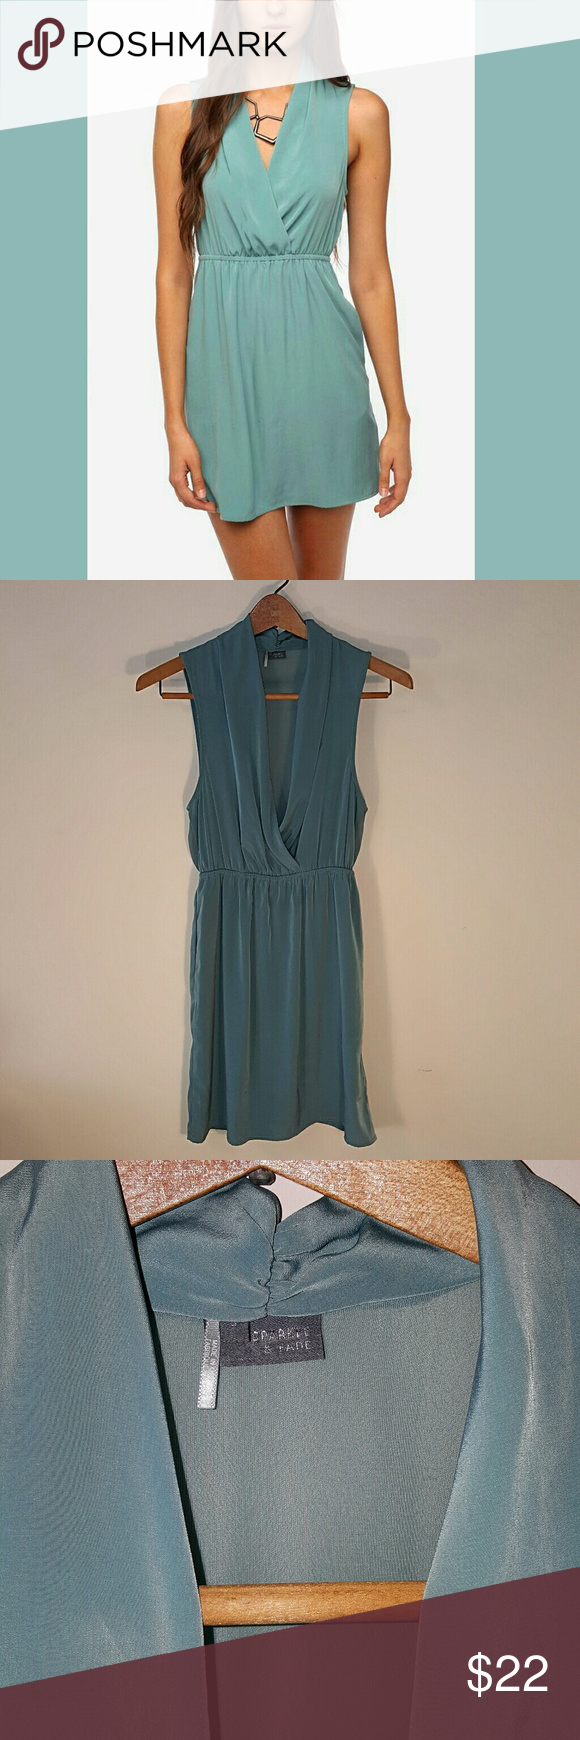 Sparkle & Fade Aqua Dress w/ Sheer Back, Small Pretty & feminine dress in a unique aqua/light teal color by Sparkle & Fade that was sold at Urban Outfitters. It has an elastic waist and a v-neck wrap-like neckline. The top portion of the back is sheer. Although it's hard to see in the picture, it's a size small. NWOT. Sparkle & Fade Dresses Mini